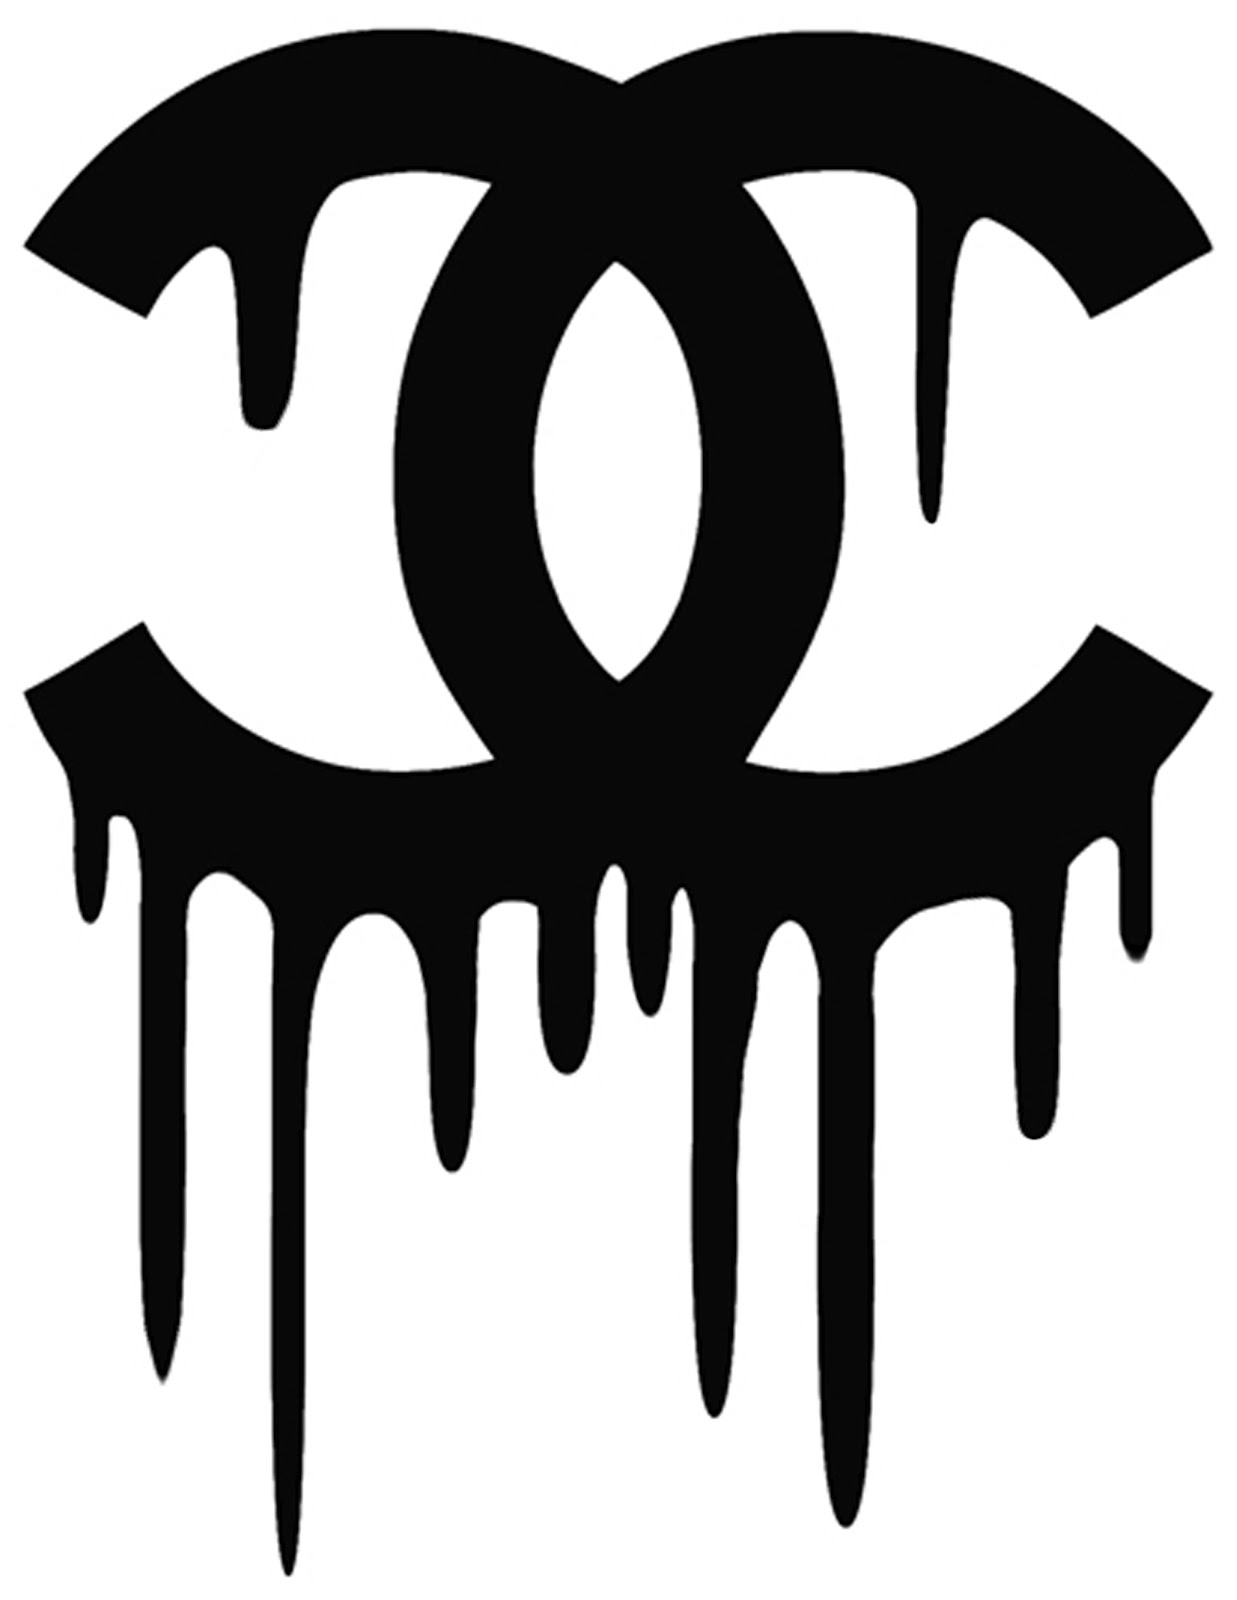 Trends For > Chanel Logo Png